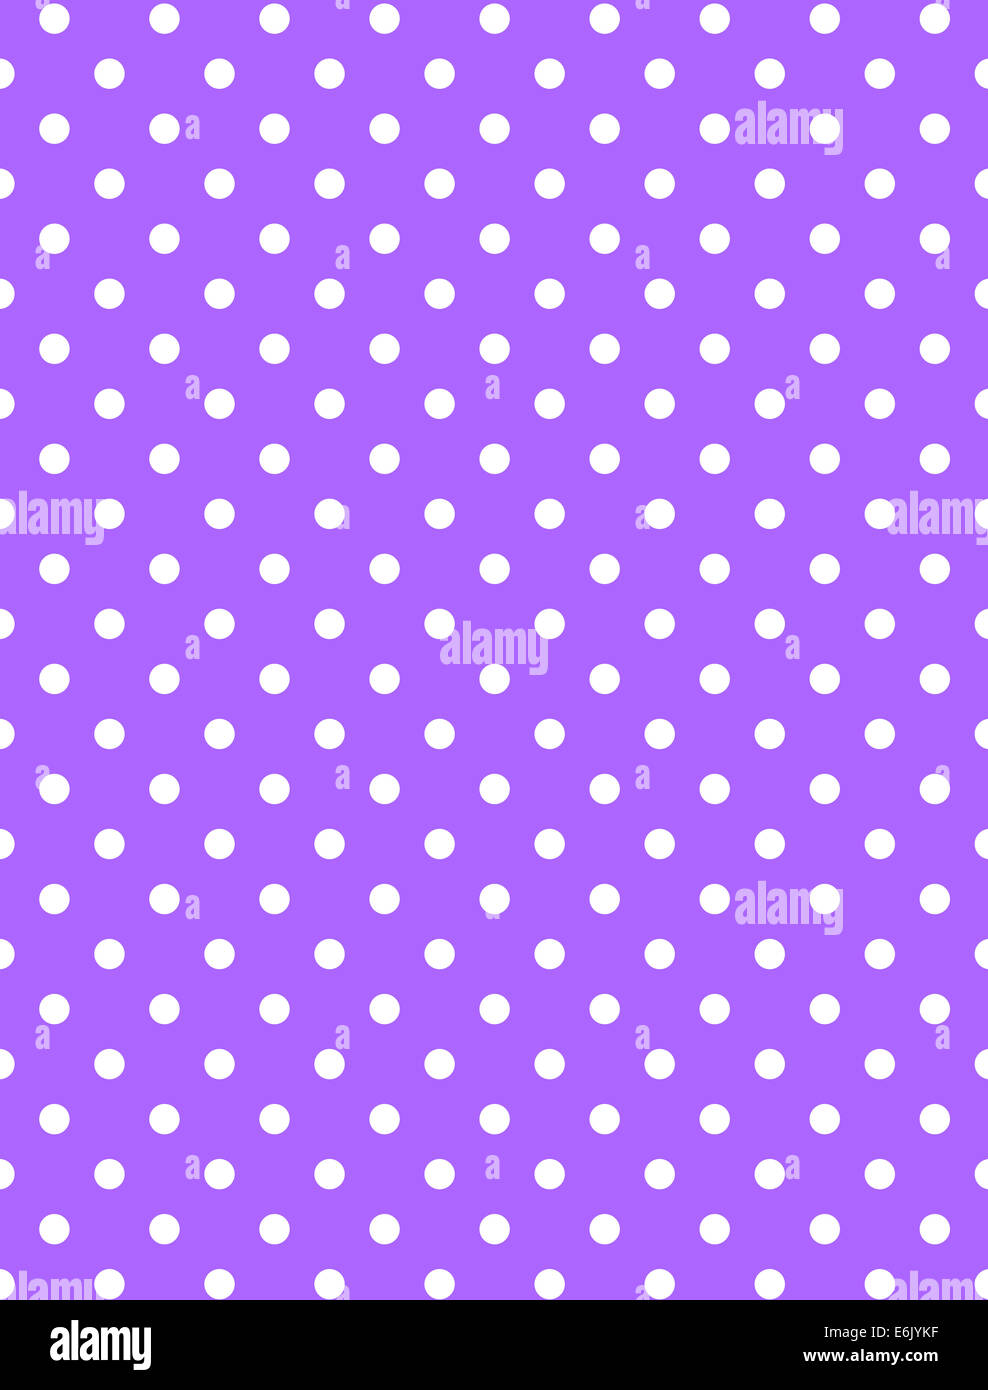 Bright lavender purple background with white polka dots ...